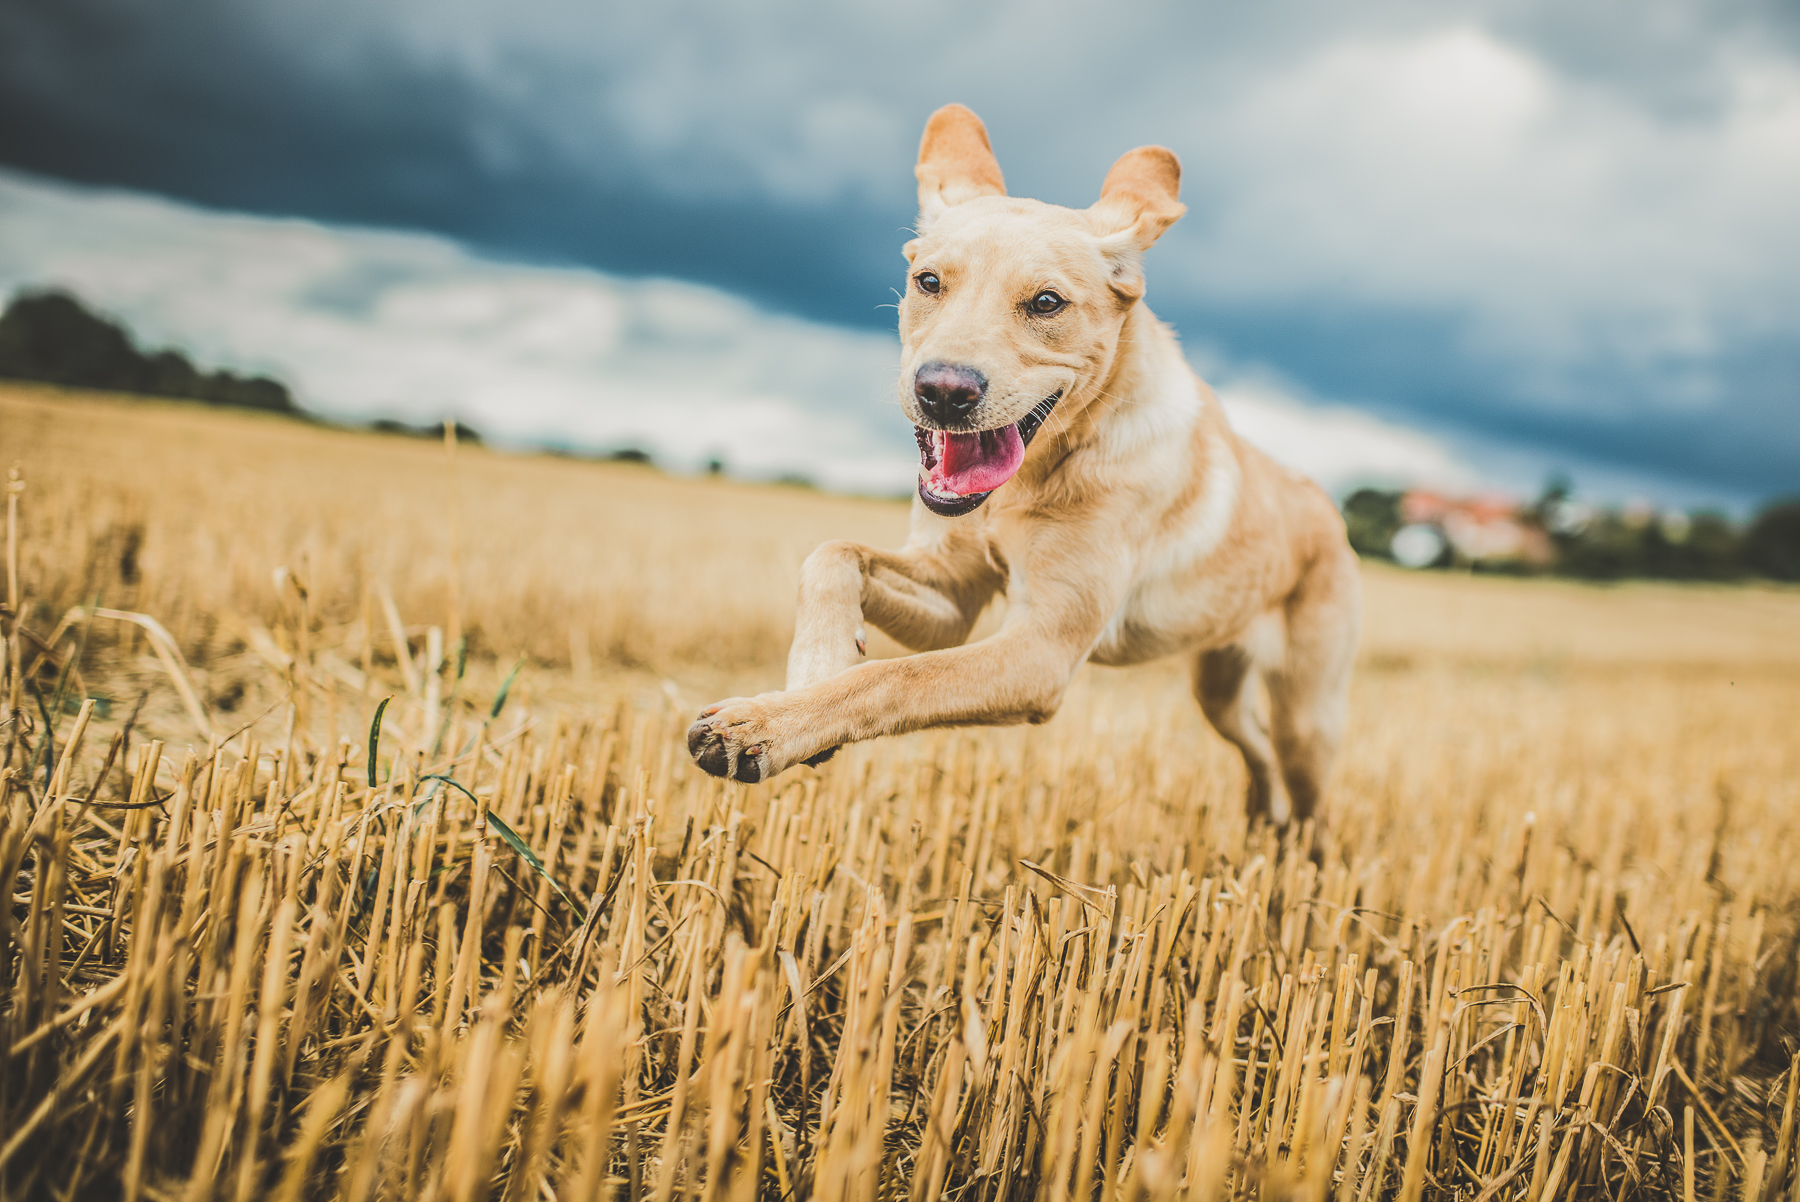 Golden labrador running through a field